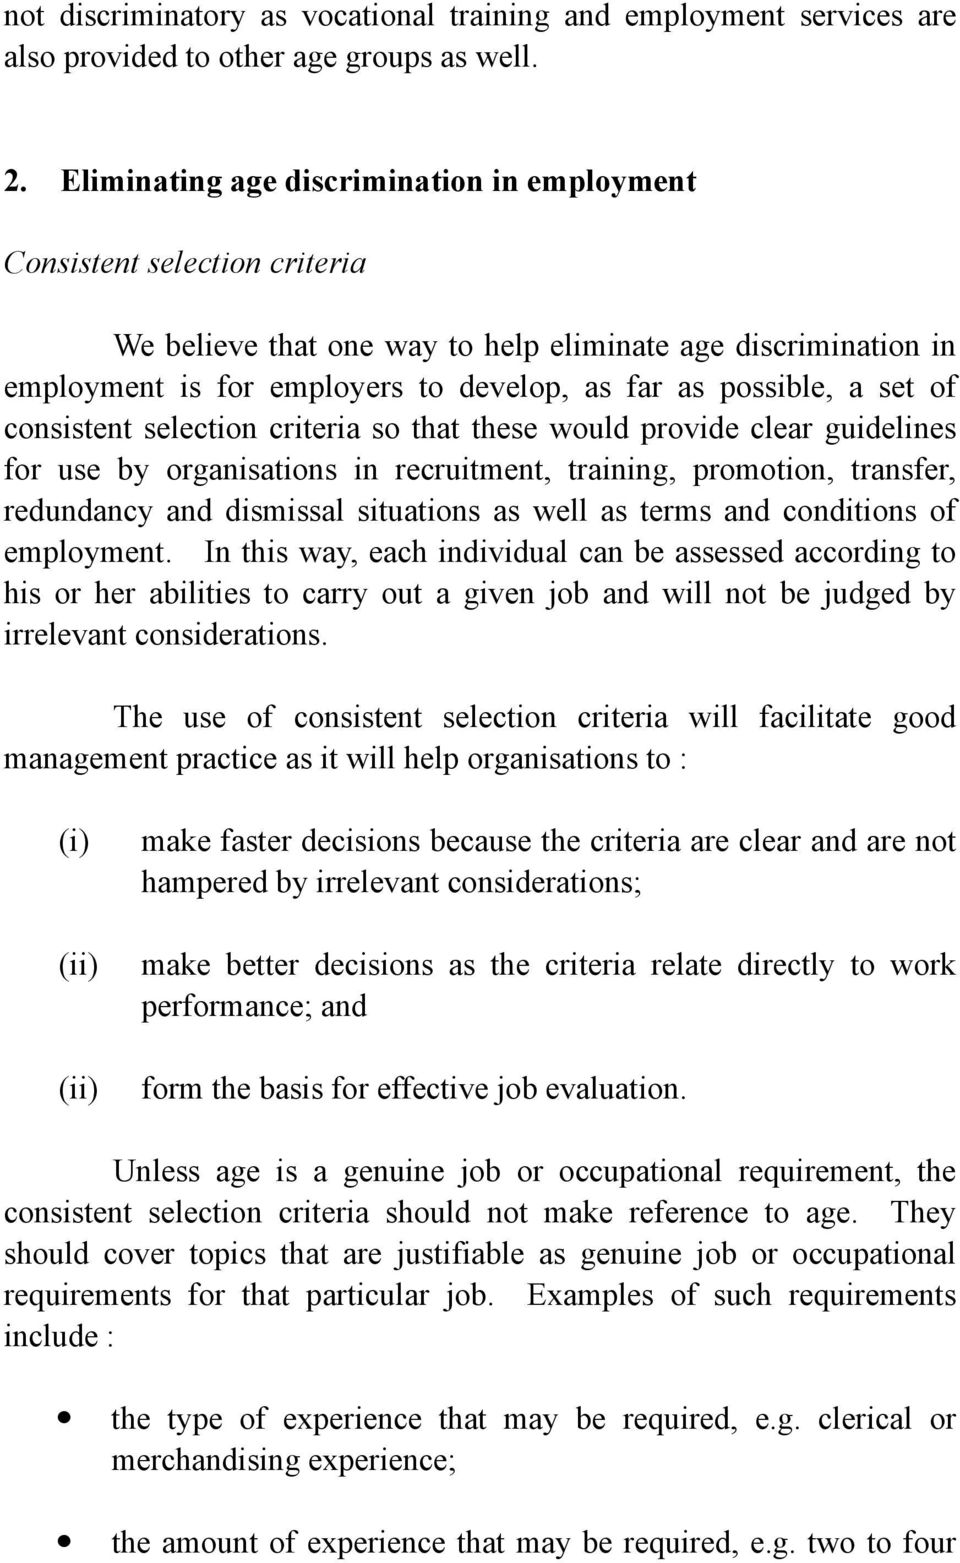 a set of consistent selection criteria so that these would provide clear guidelines for use by organisations in recruitment, training, promotion, transfer, redundancy and dismissal situations as well